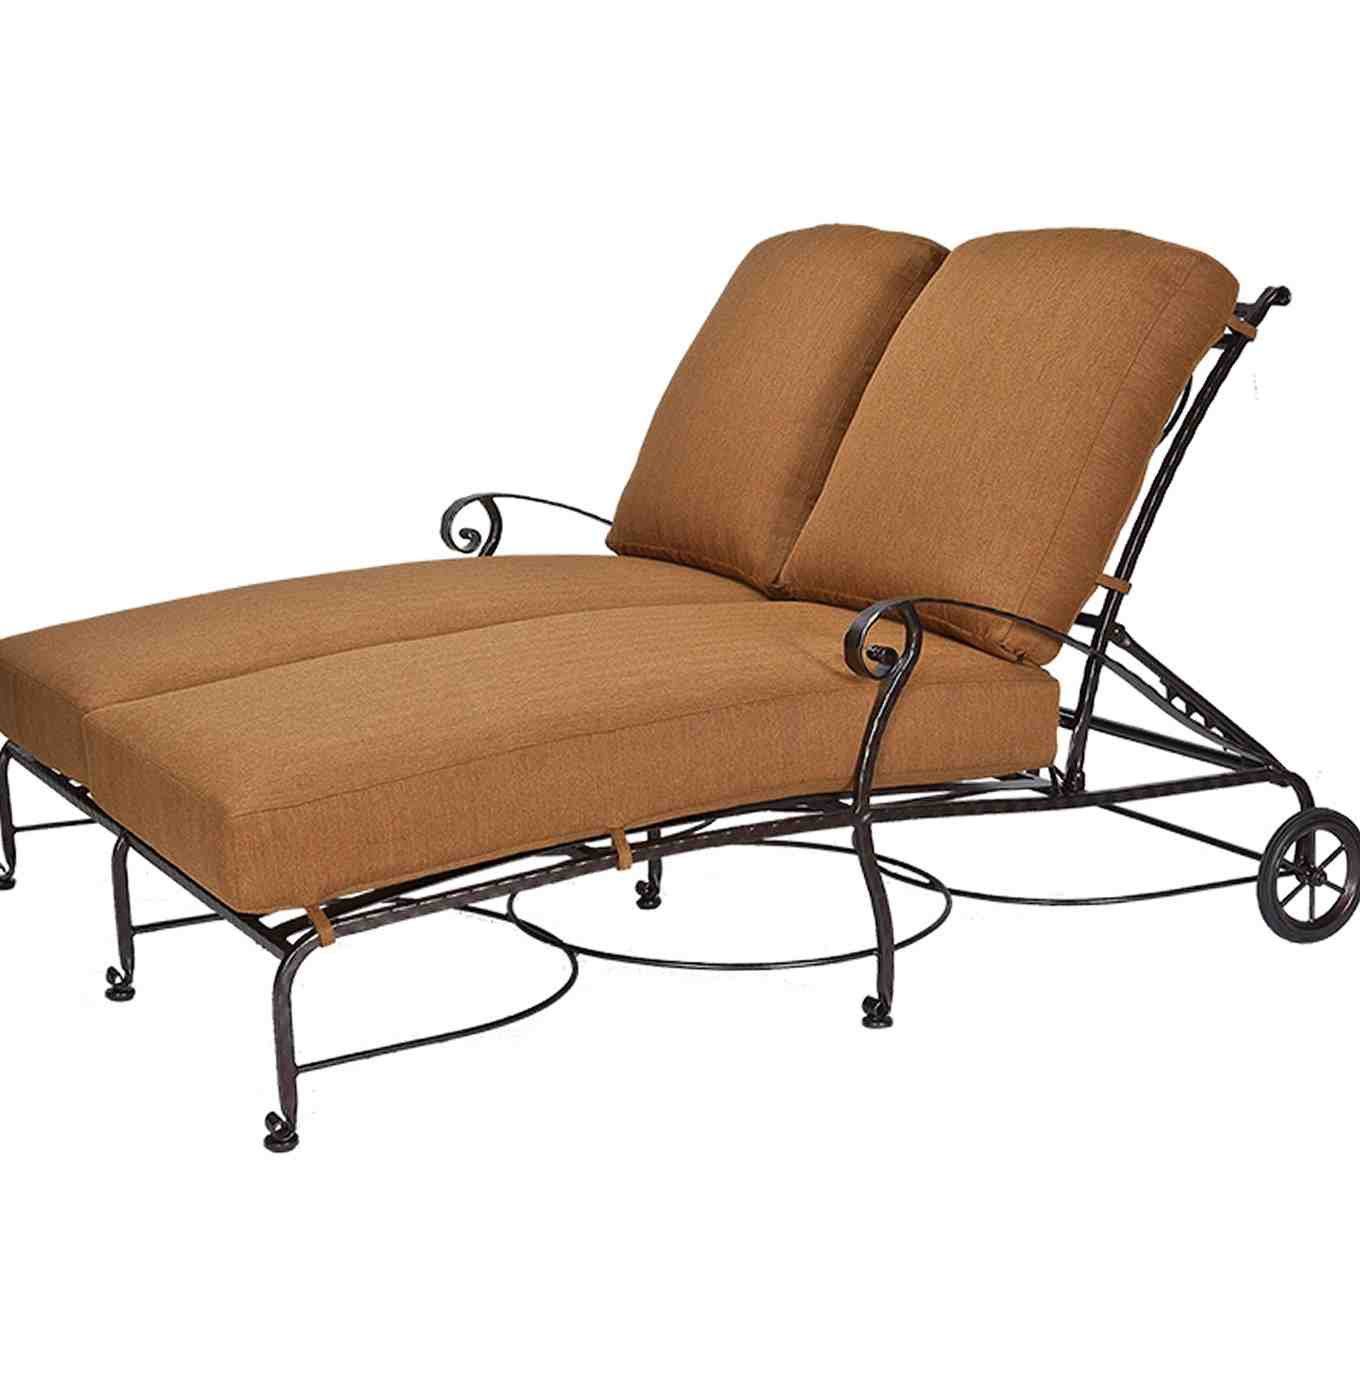 Double Lounge Chair Double Chaise Lounge Cover Outdoor Furniture Home